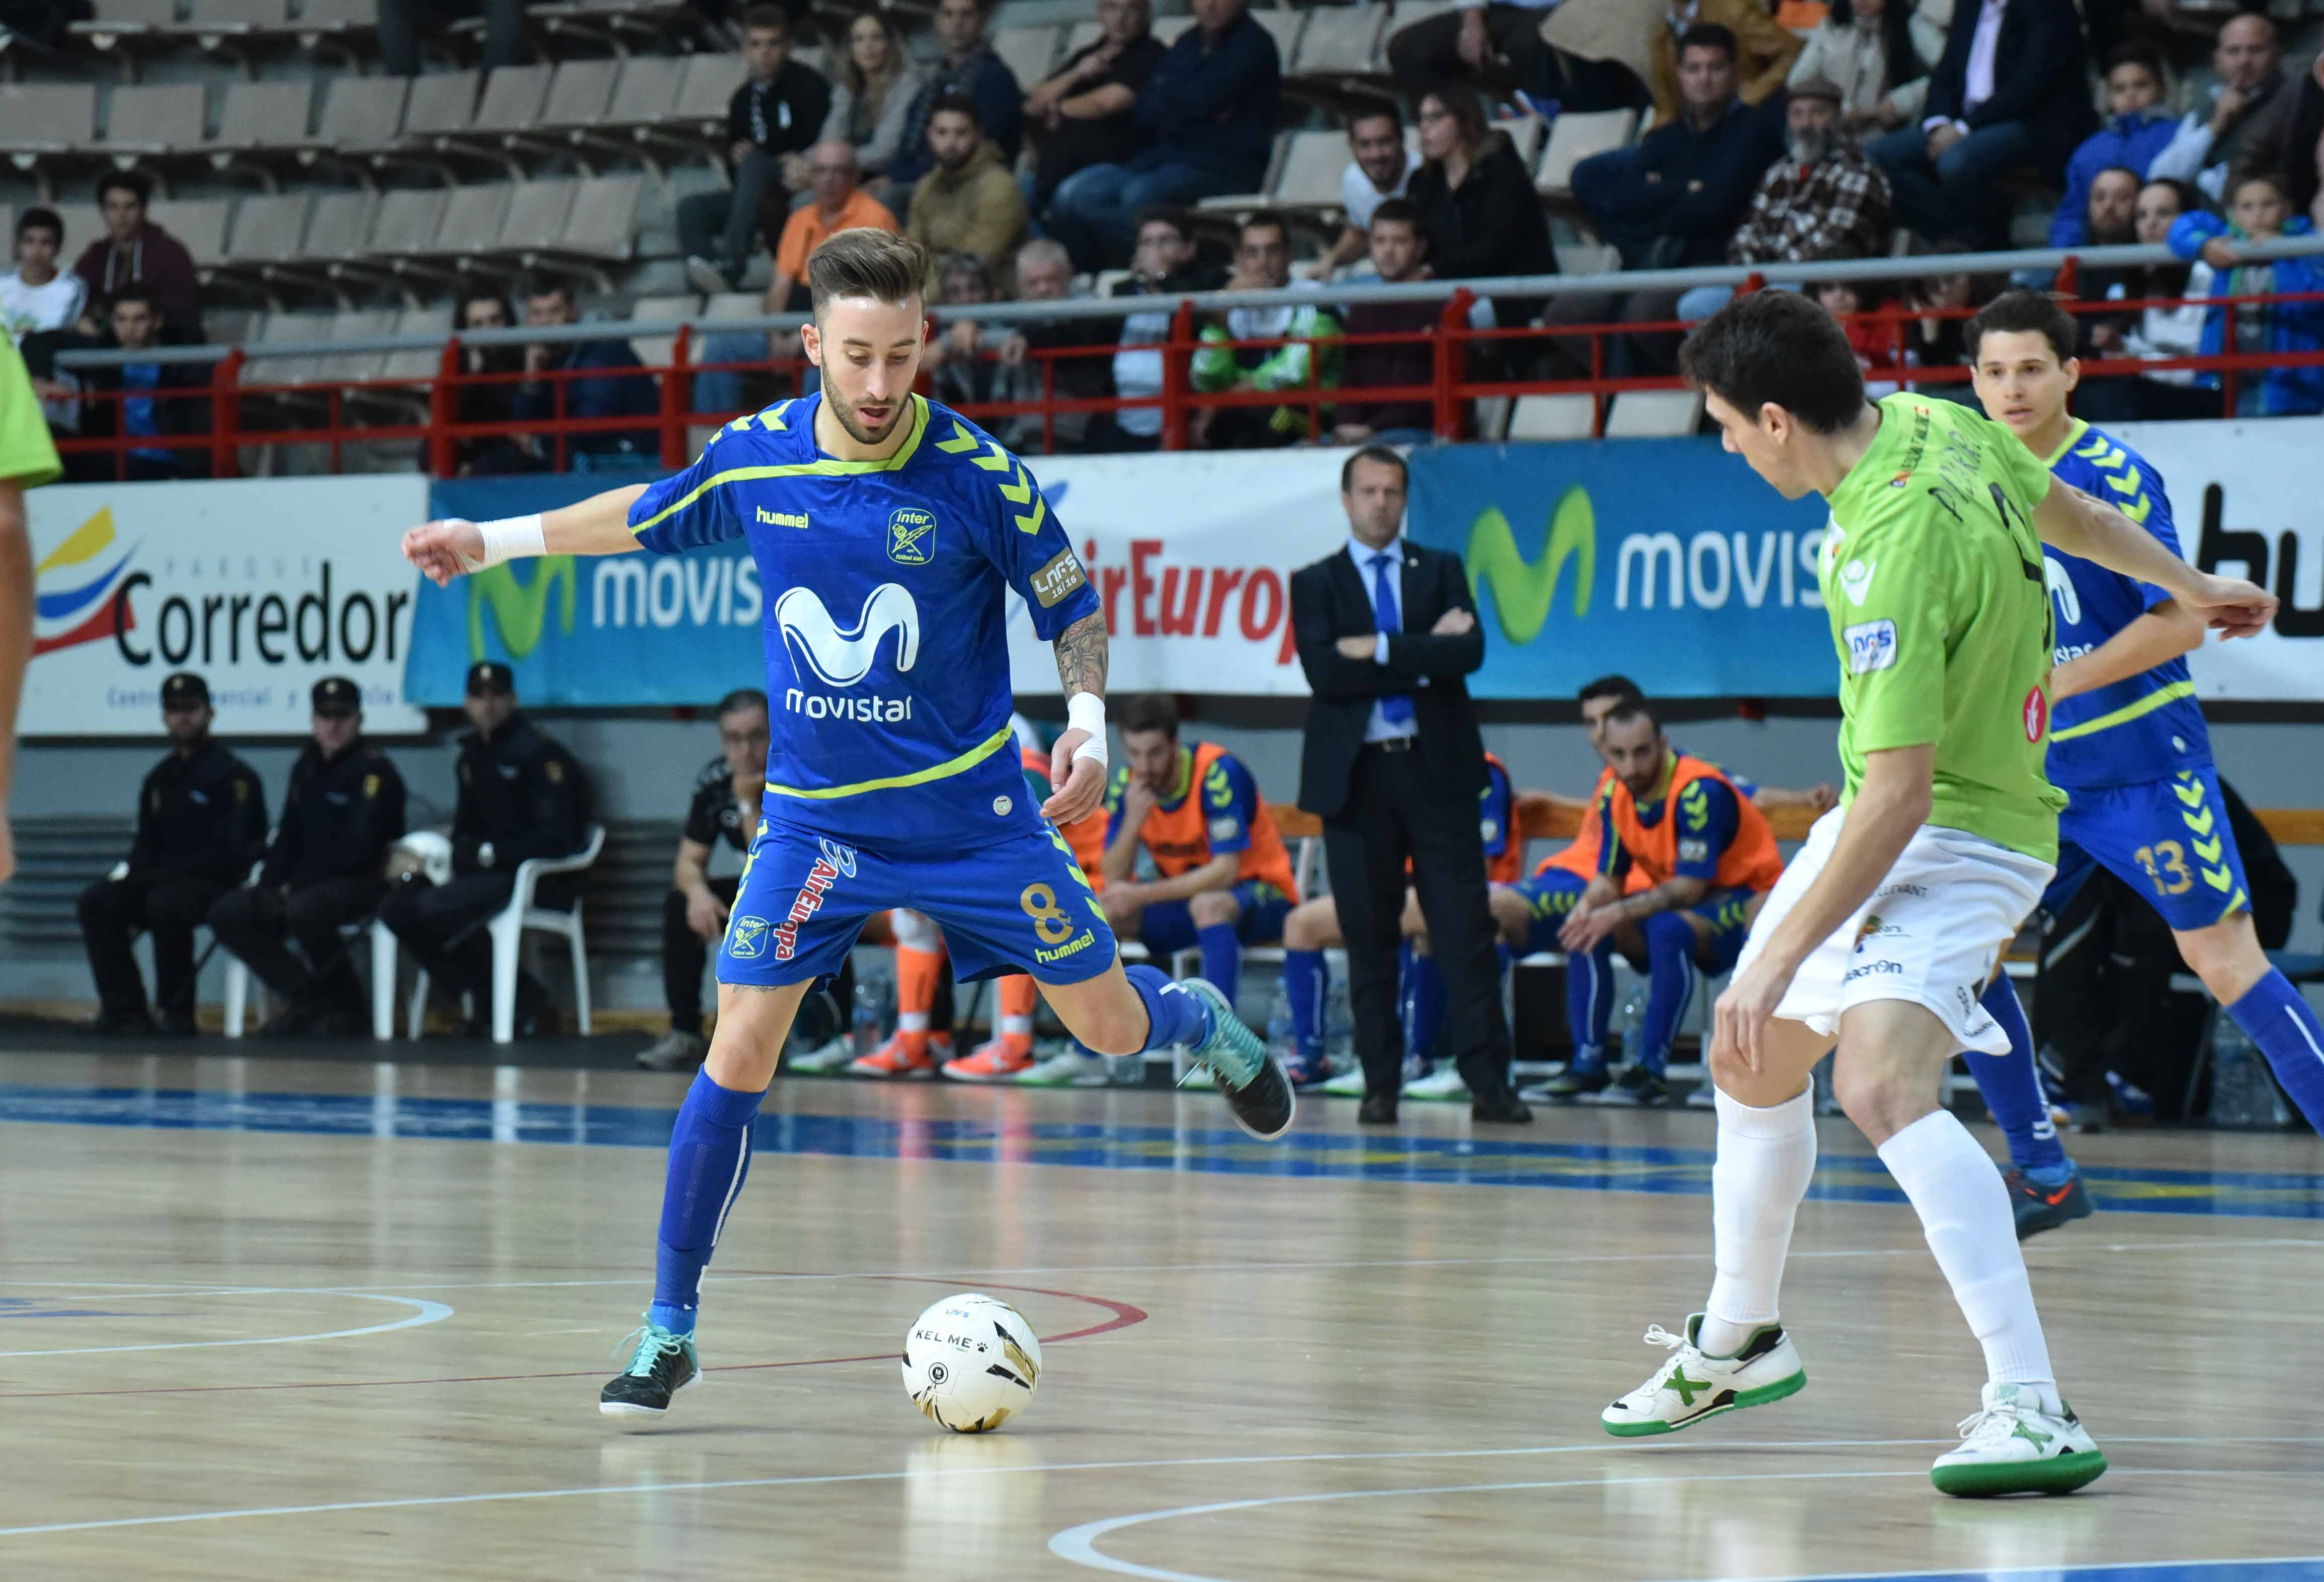 Movistar Inter-Palma Futsal12